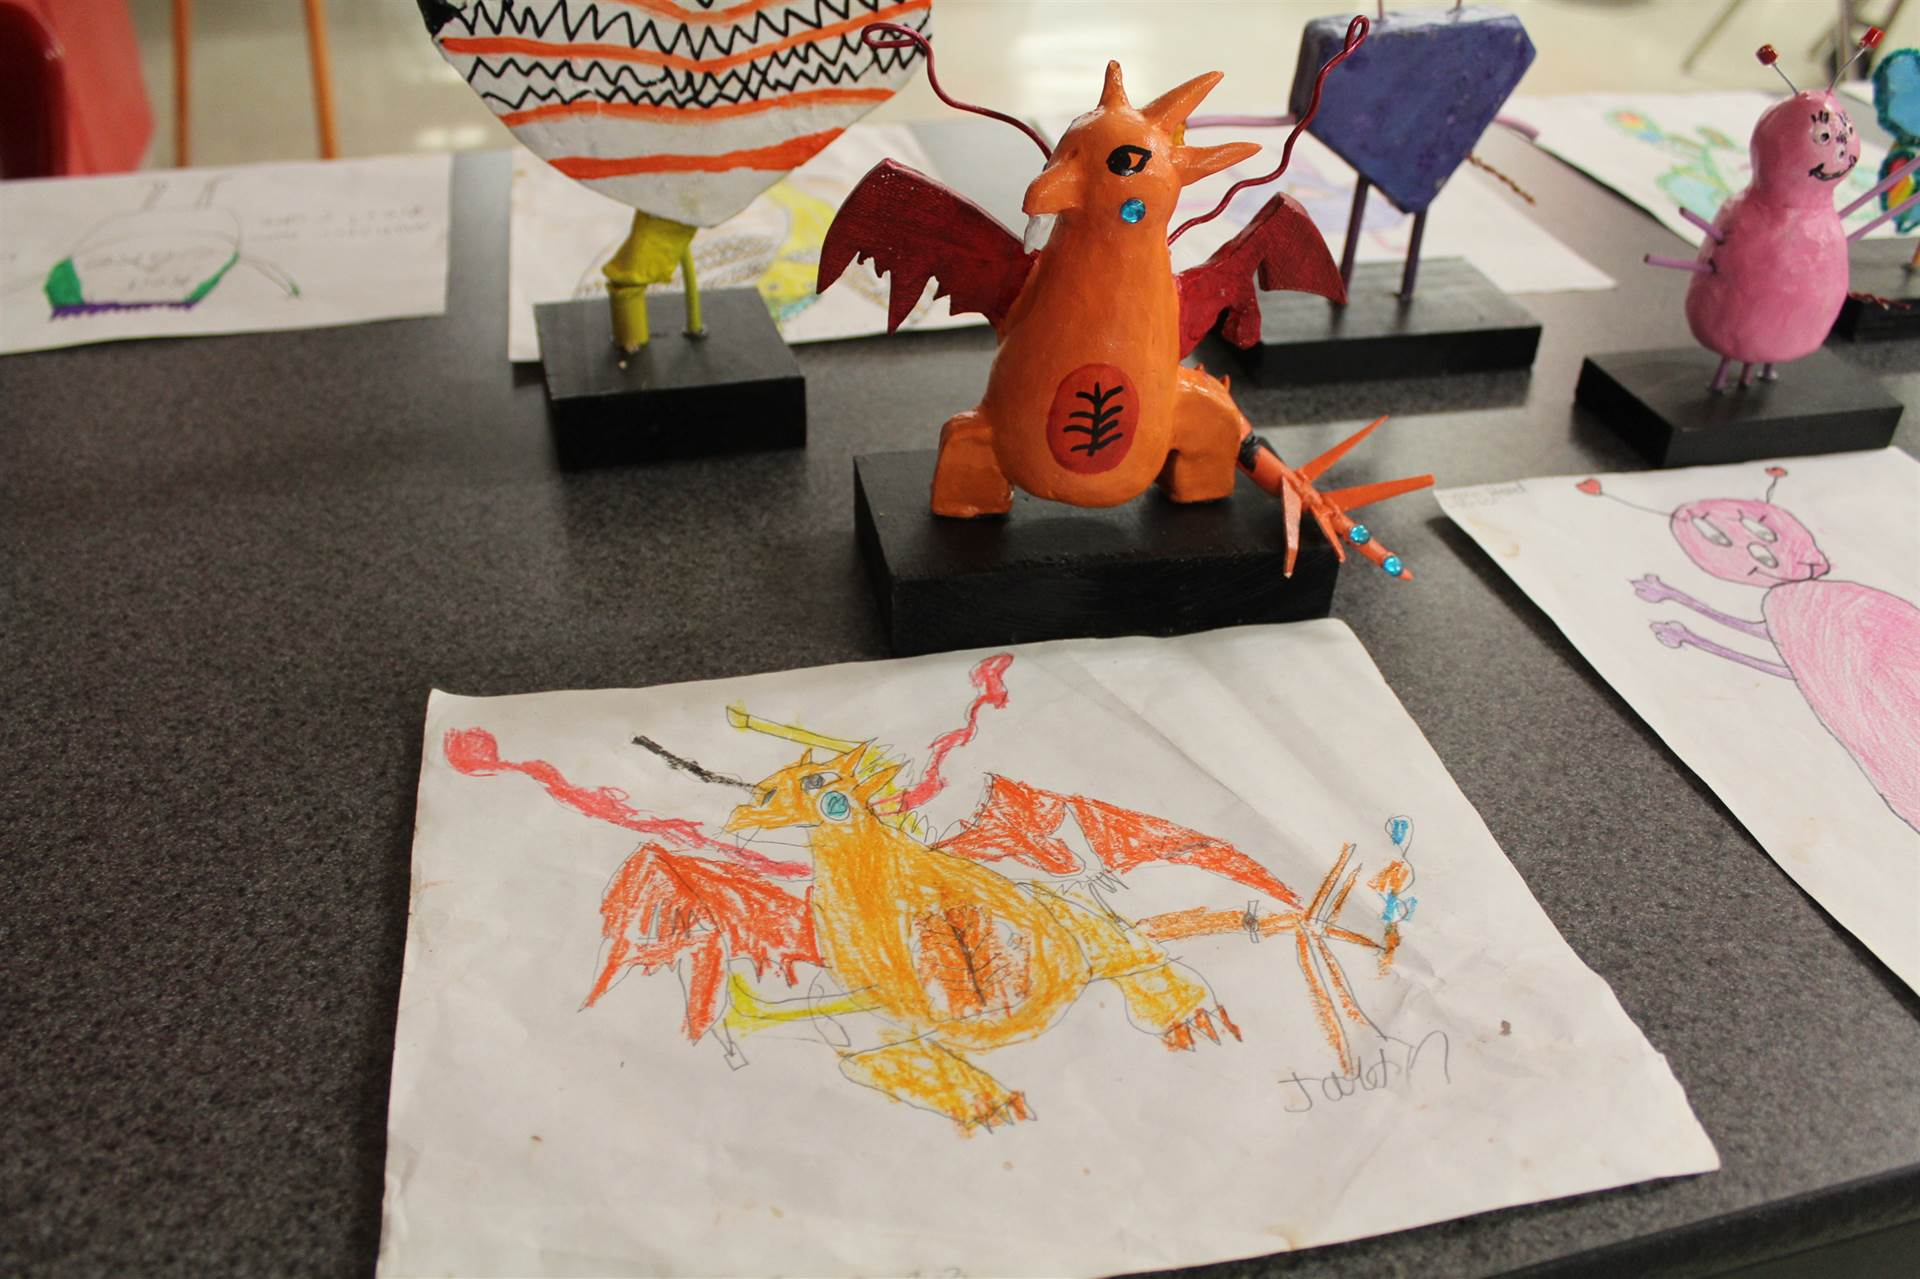 monster 3 d sculpture next to drawn picture 51